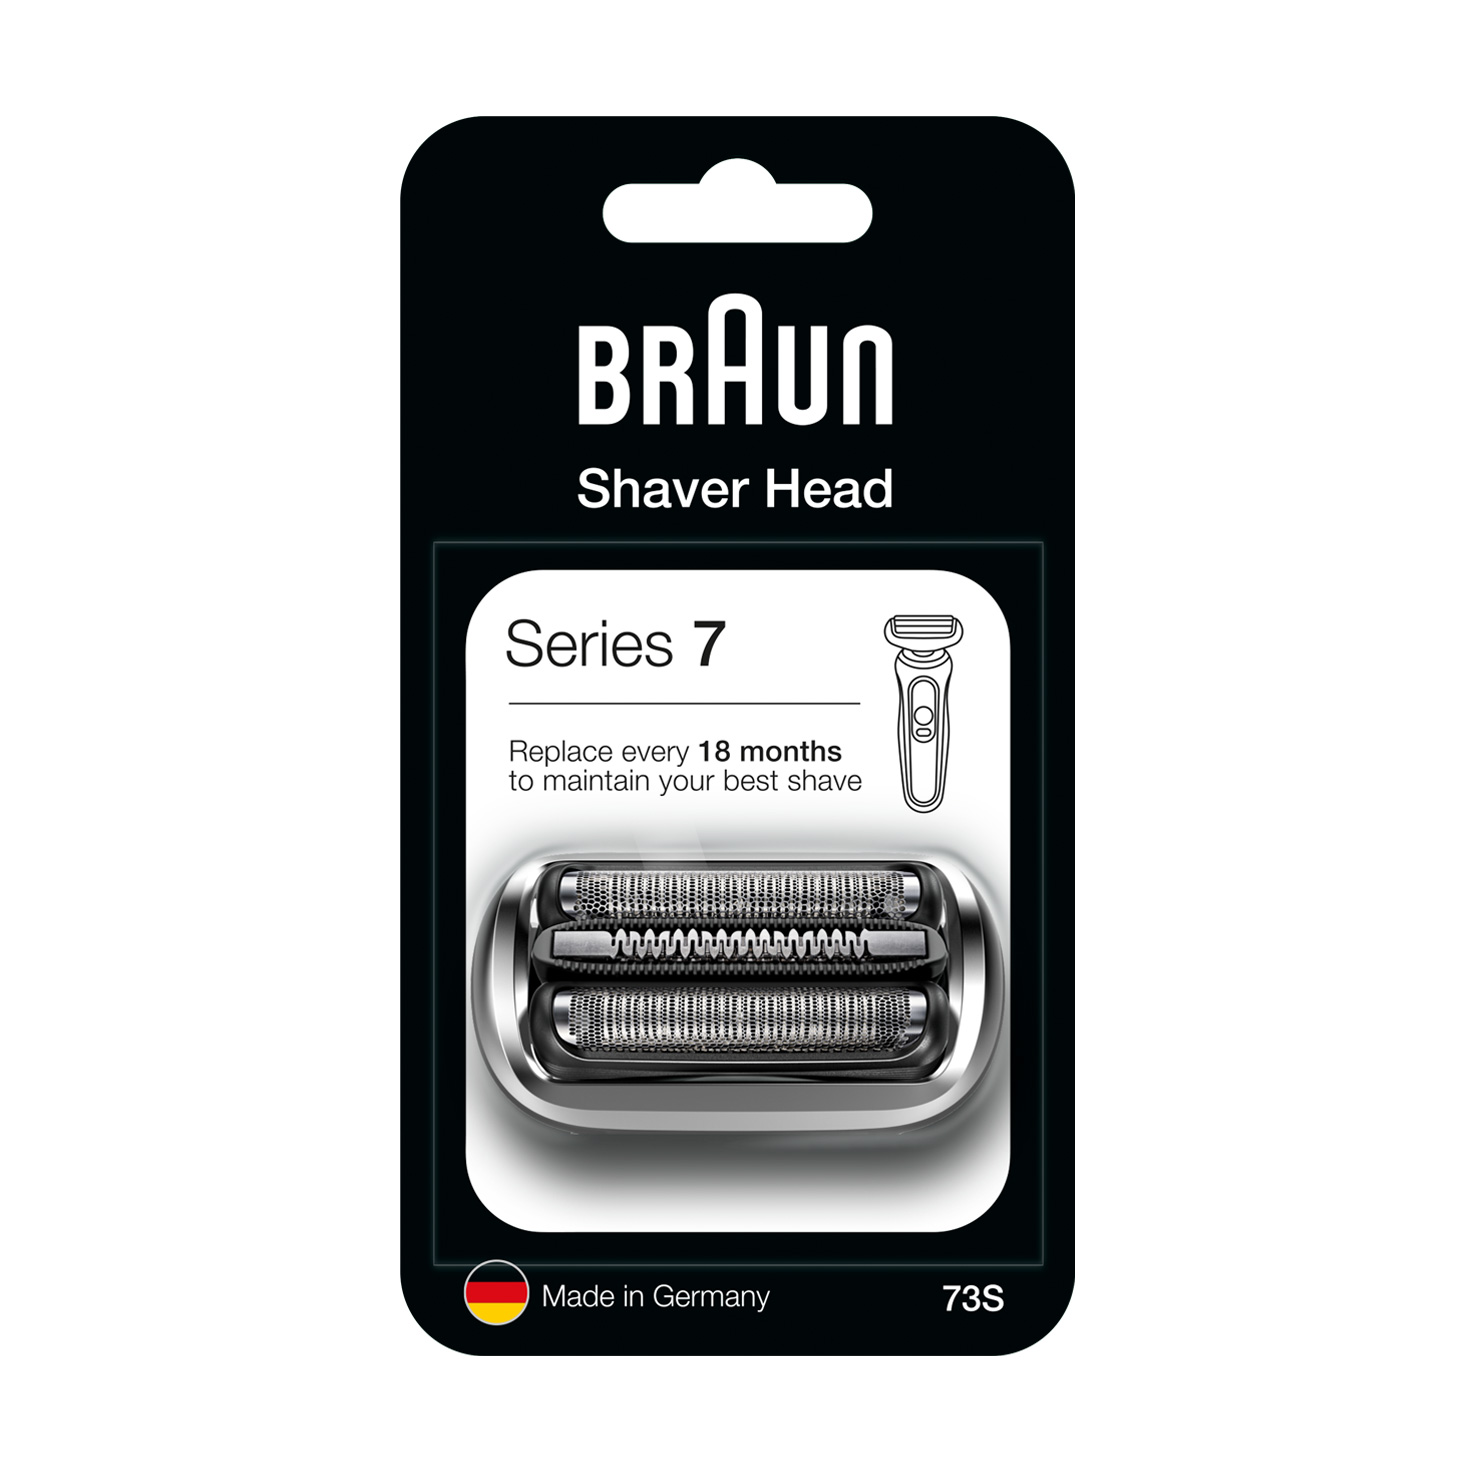 Braun Series 7, 73S, Electric shaver head, sliver